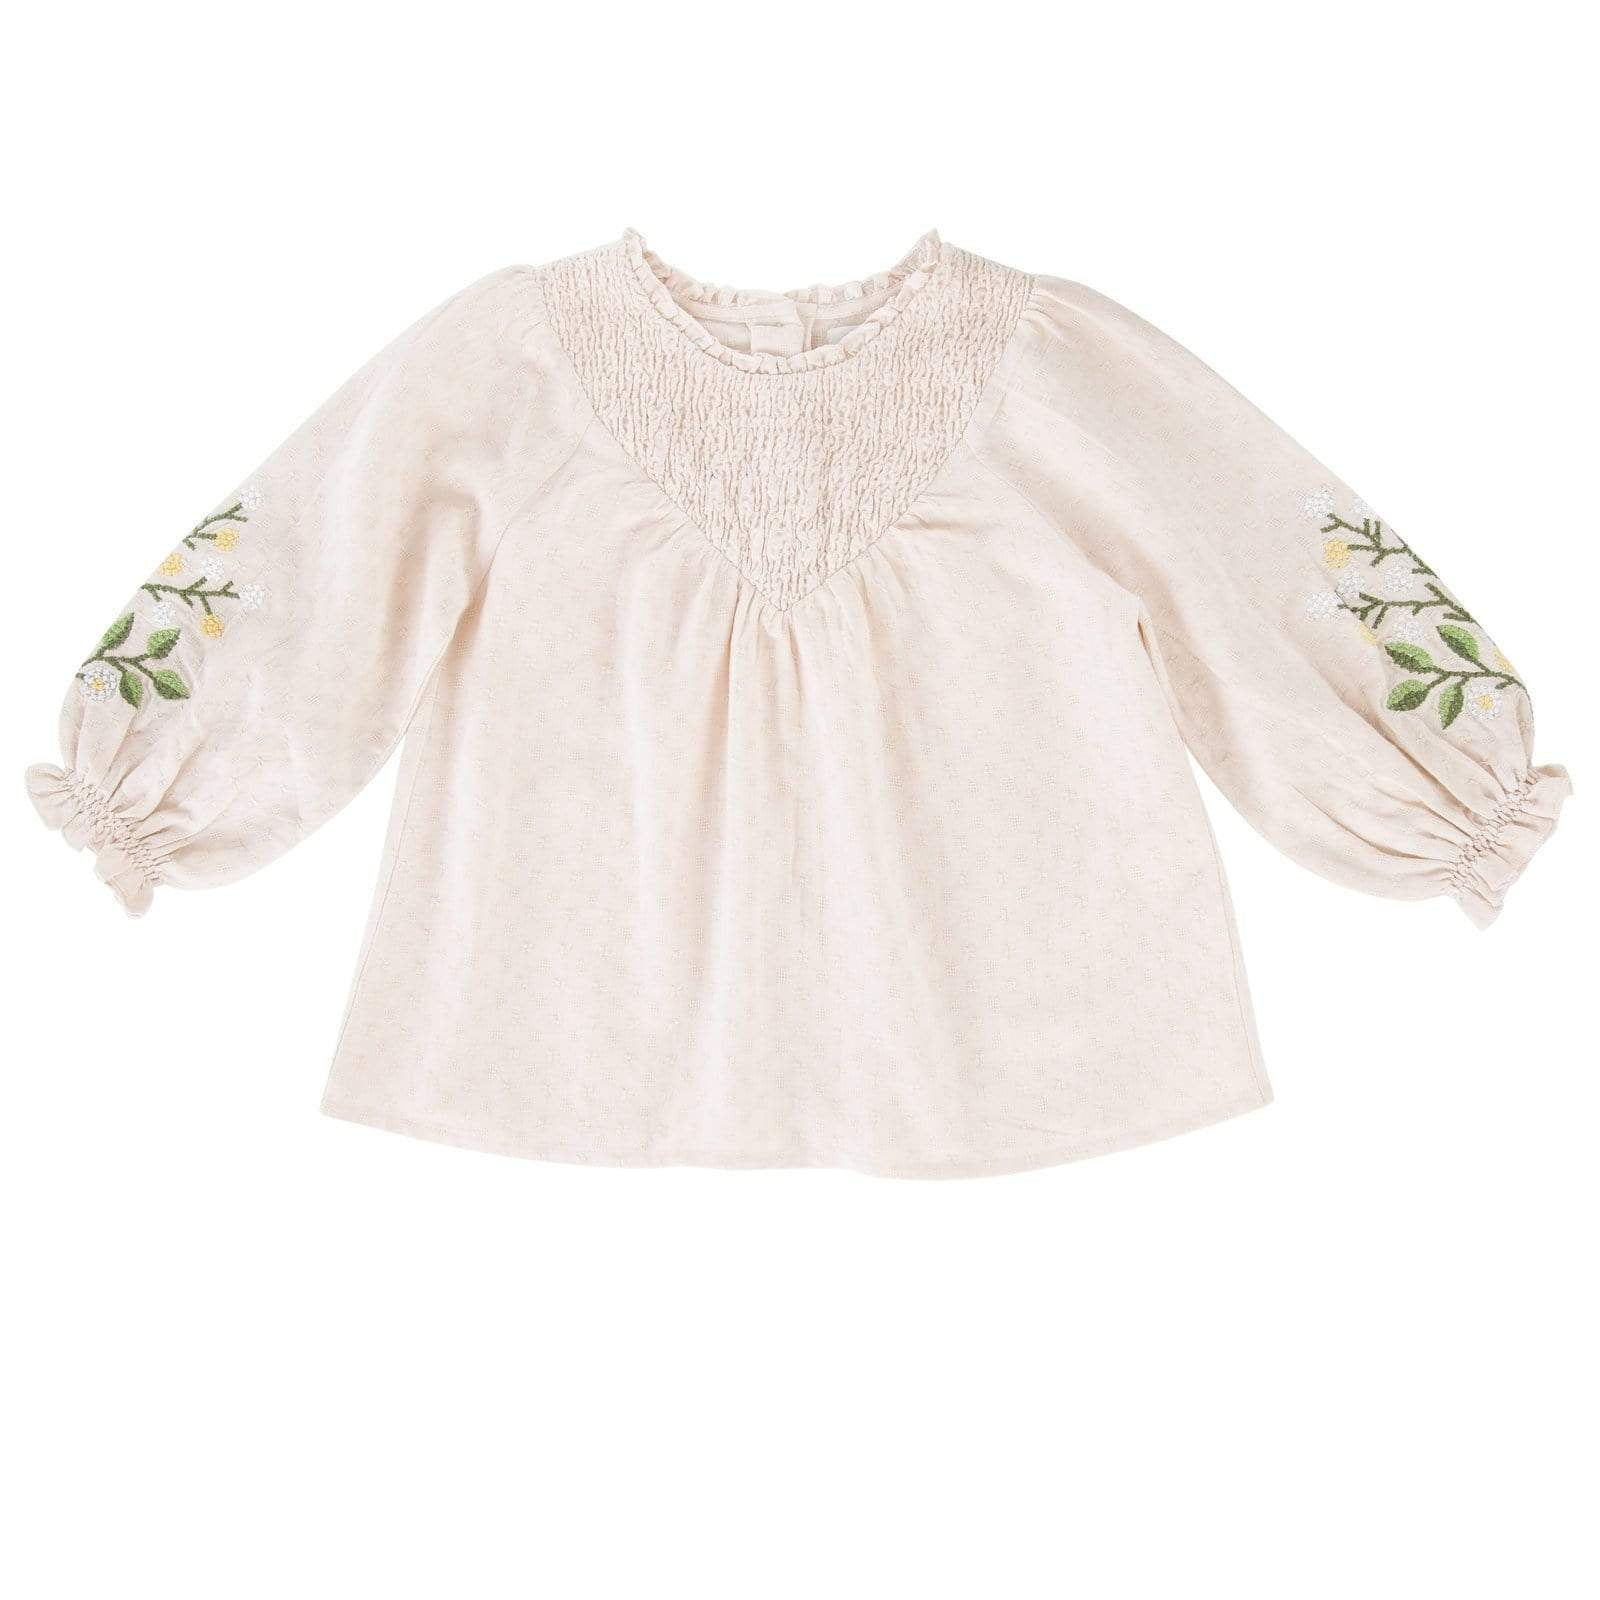 Peggy Tops Etta Shirt - Doby Soft Pink